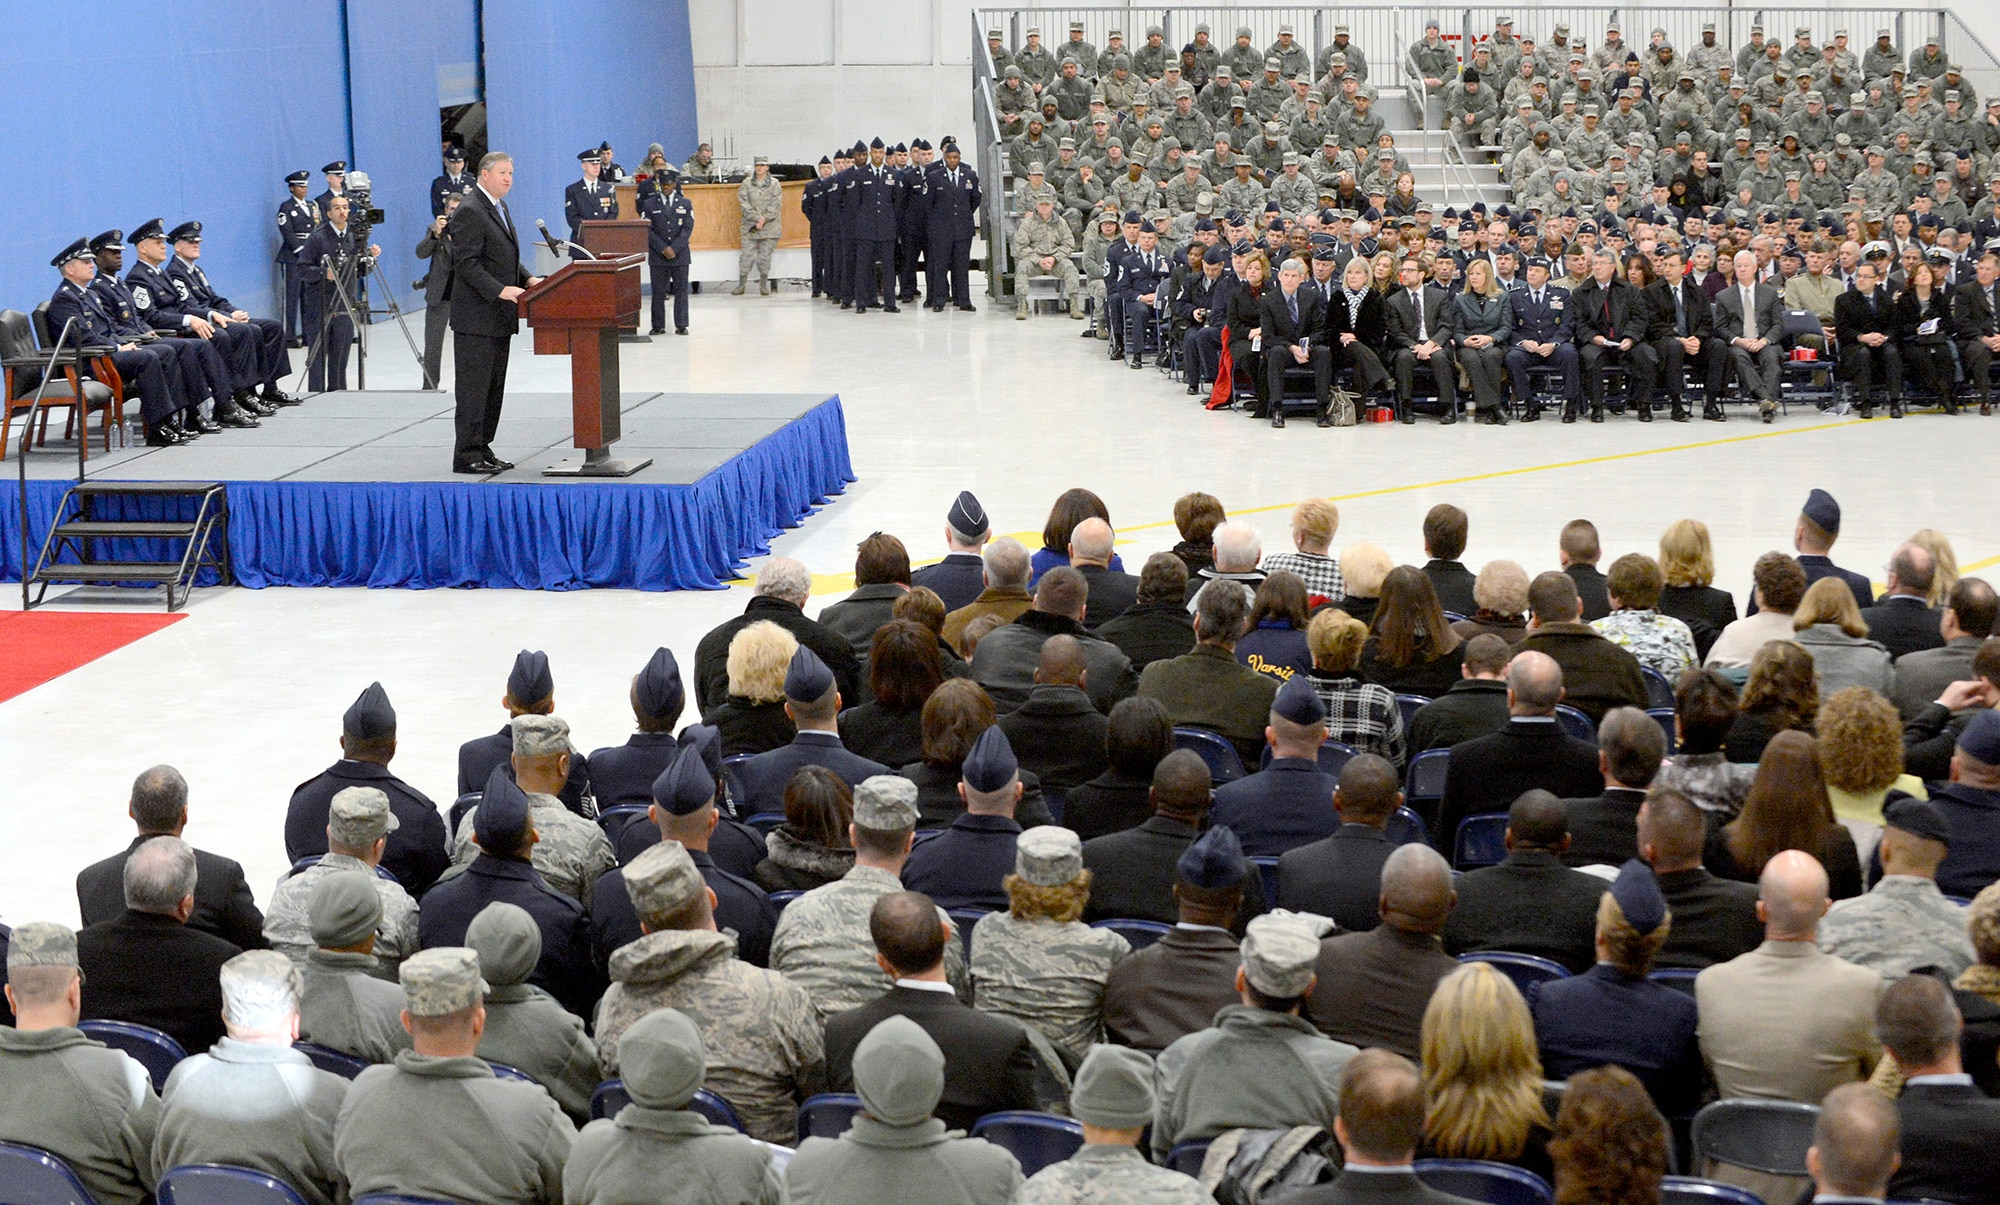 Secretary of the Air Force Michael Donley expresses his thanks to Chief Master Sgt. of the Air Force James Roy upon his retirement and welcomes new Chief Master Sgt. of the Air Force James Cody during a transition ceremony at Joint Base Andrews, Md., Jan 24, 2013.  (U.S. Air Force photo/Scott M. Ash)